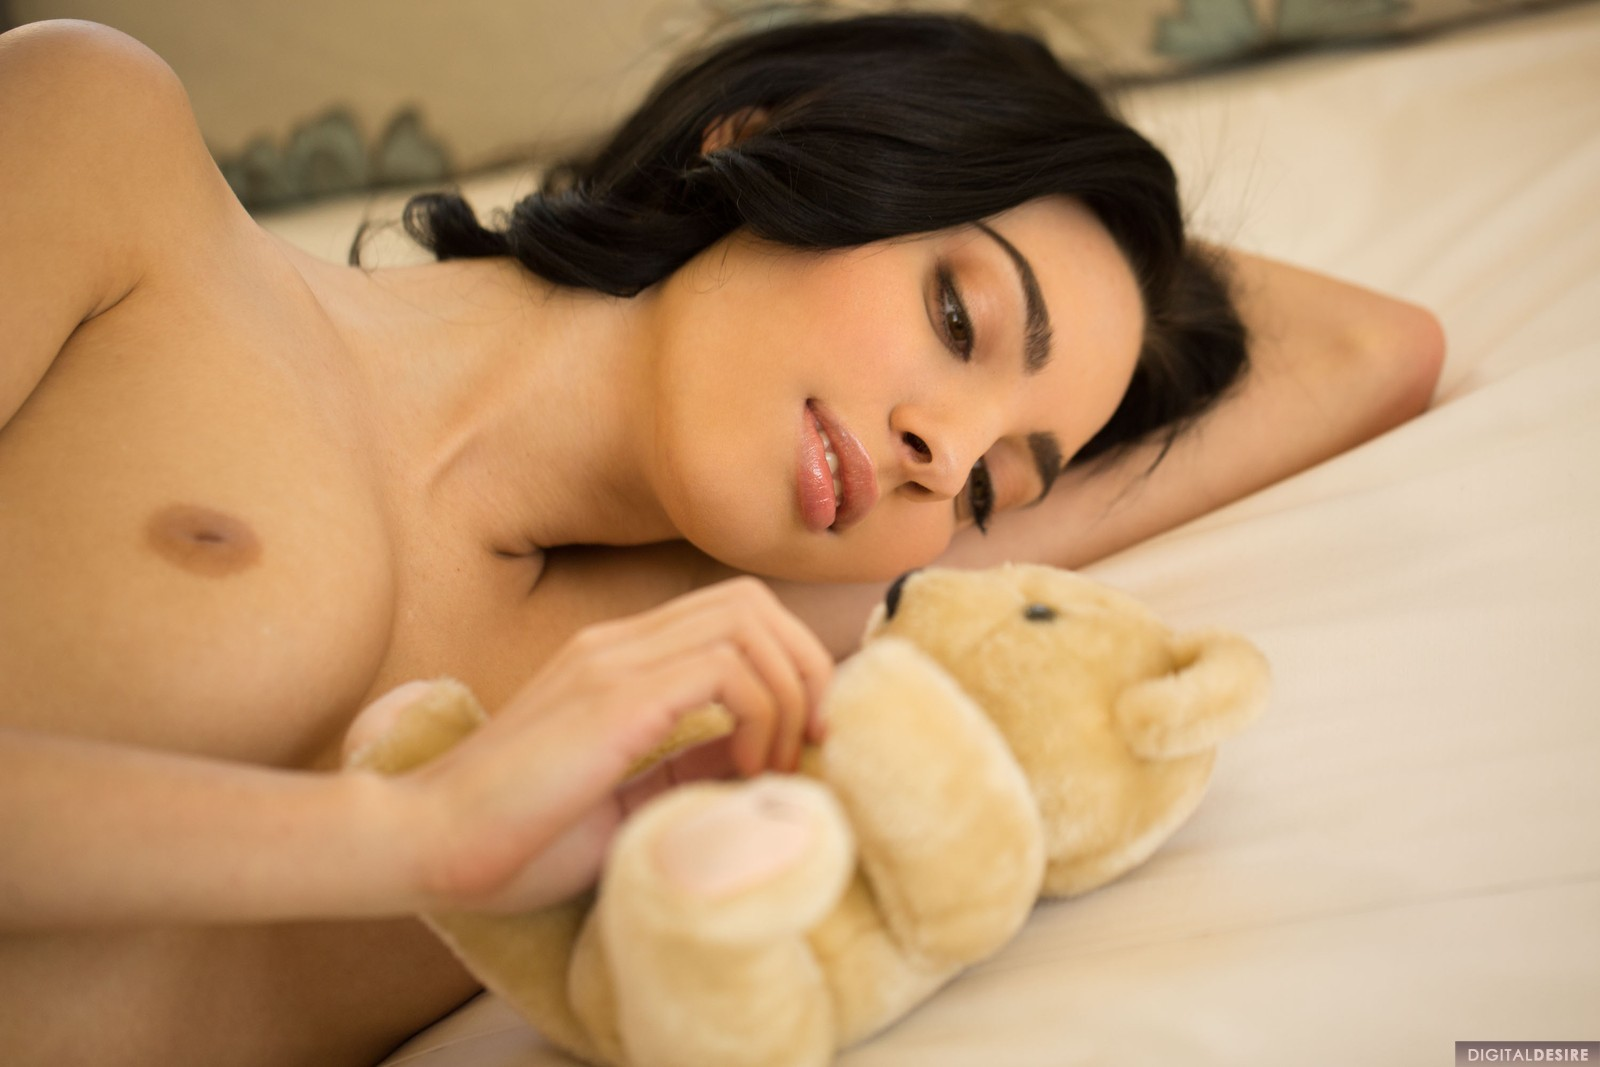 Wild araya acosta wearing none but nylons in daybed